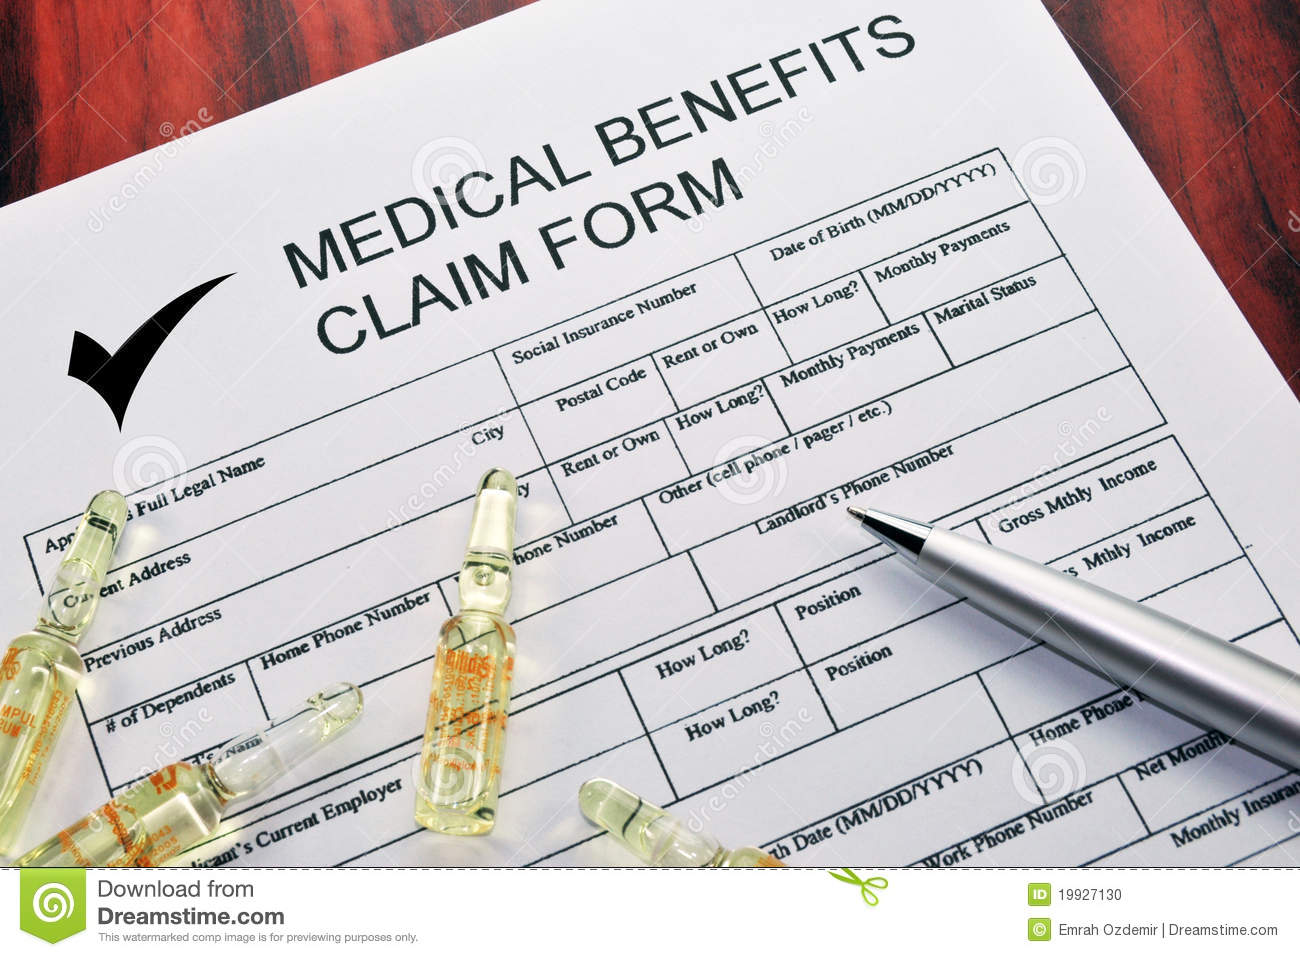 Medical Benefits Claim Form Stock Photo Image: 19927130